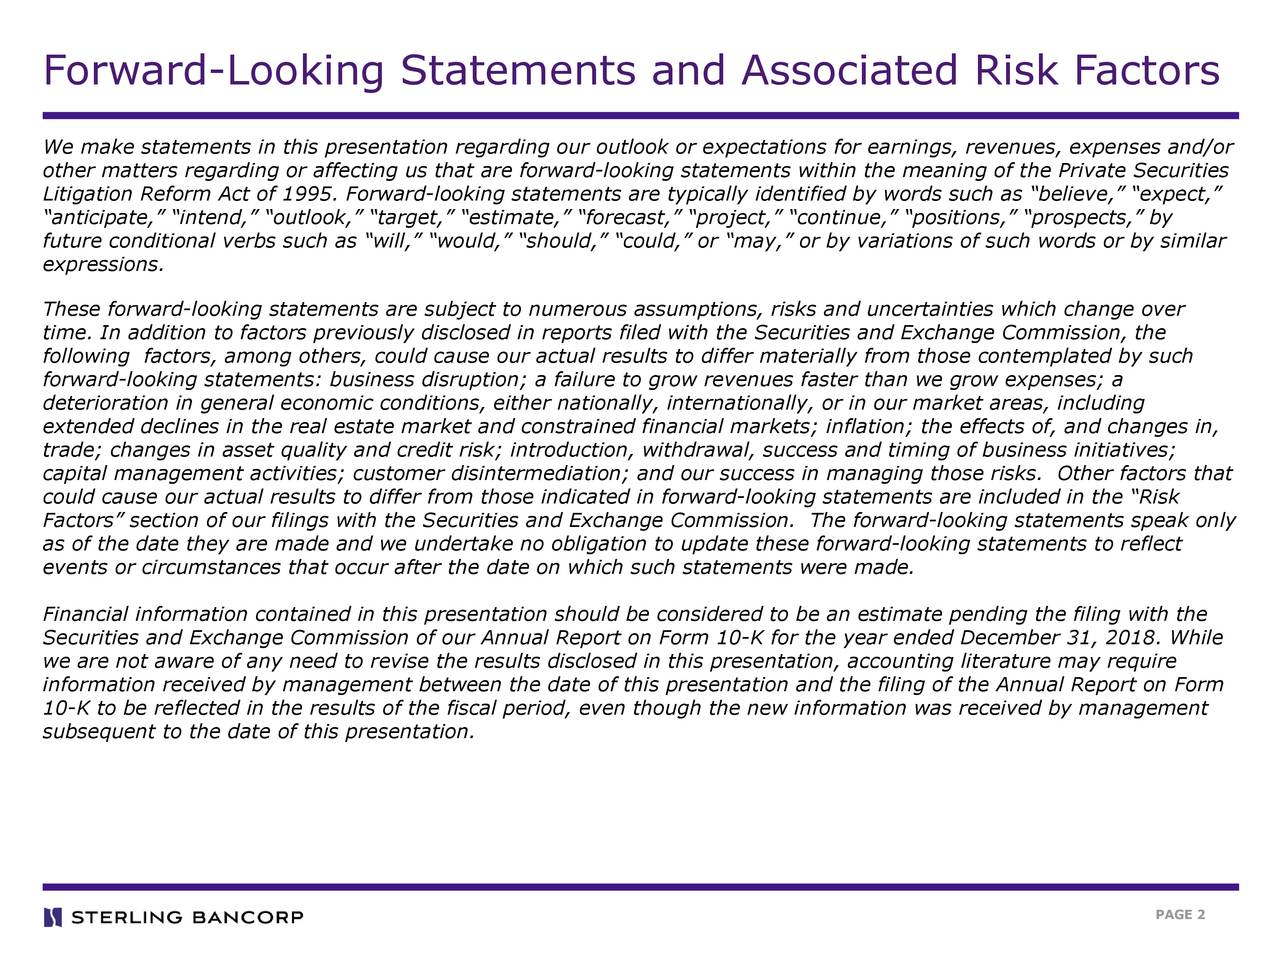 """We make statements in this presentation regarding our outlook or expectations for earnings, revenues, expenses and/or other matters regarding or affecting us that are forward-looking statements within the meaning of the Private Securities Litigation Reform Act of 1995. Forward-looking statements are typically identified by words such as """"believe,"""" """"expect,"""" """"anticipate,"""" """"intend,"""" """"outlook,"""" """"target,"""" """"estimate,"""" """"forecast,"""" """"project,"""" """"continue,"""" """"positions,"""" """"prospects,"""" by future conditional verbs such as """"will,"""" """"would,"""" """"should,"""" """"could,"""" or """"may,"""" or by variations of such words or by similar expressions. These forward-looking statements are subject to numerous assumptions, risks and uncertainties which change over time. In addition to factors previously disclosed in reports filed with the Securities and Exchange Commission, the following factors, among others, could cause our actual results to differ materially from those contemplated by such forward-looking statements: business disruption; a failure to grow revenues faster than we grow expenses; a deterioration in general economic conditions, either nationally, internationally, or in our market areas, including extended declines in the real estate market and constrained financial markets; inflation; the effects of, and changes in, trade; changes in asset quality and credit risk; introduction, withdrawal, success and timing of business initiatives; capital management activities; customer disintermediation; and our success in managing those risks. Other factors that could cause our actual results to differ from those indicated in forward-looking statements are included in the """"Risk Factors"""" section of our filings with the Securities and Exchange Commission. The forward-looking statements speak only as of the date they are made and we undertake no obligation to update these forward-looking statements to reflect events or circumstances that occur after the date on which such statements were made. Financial inform"""